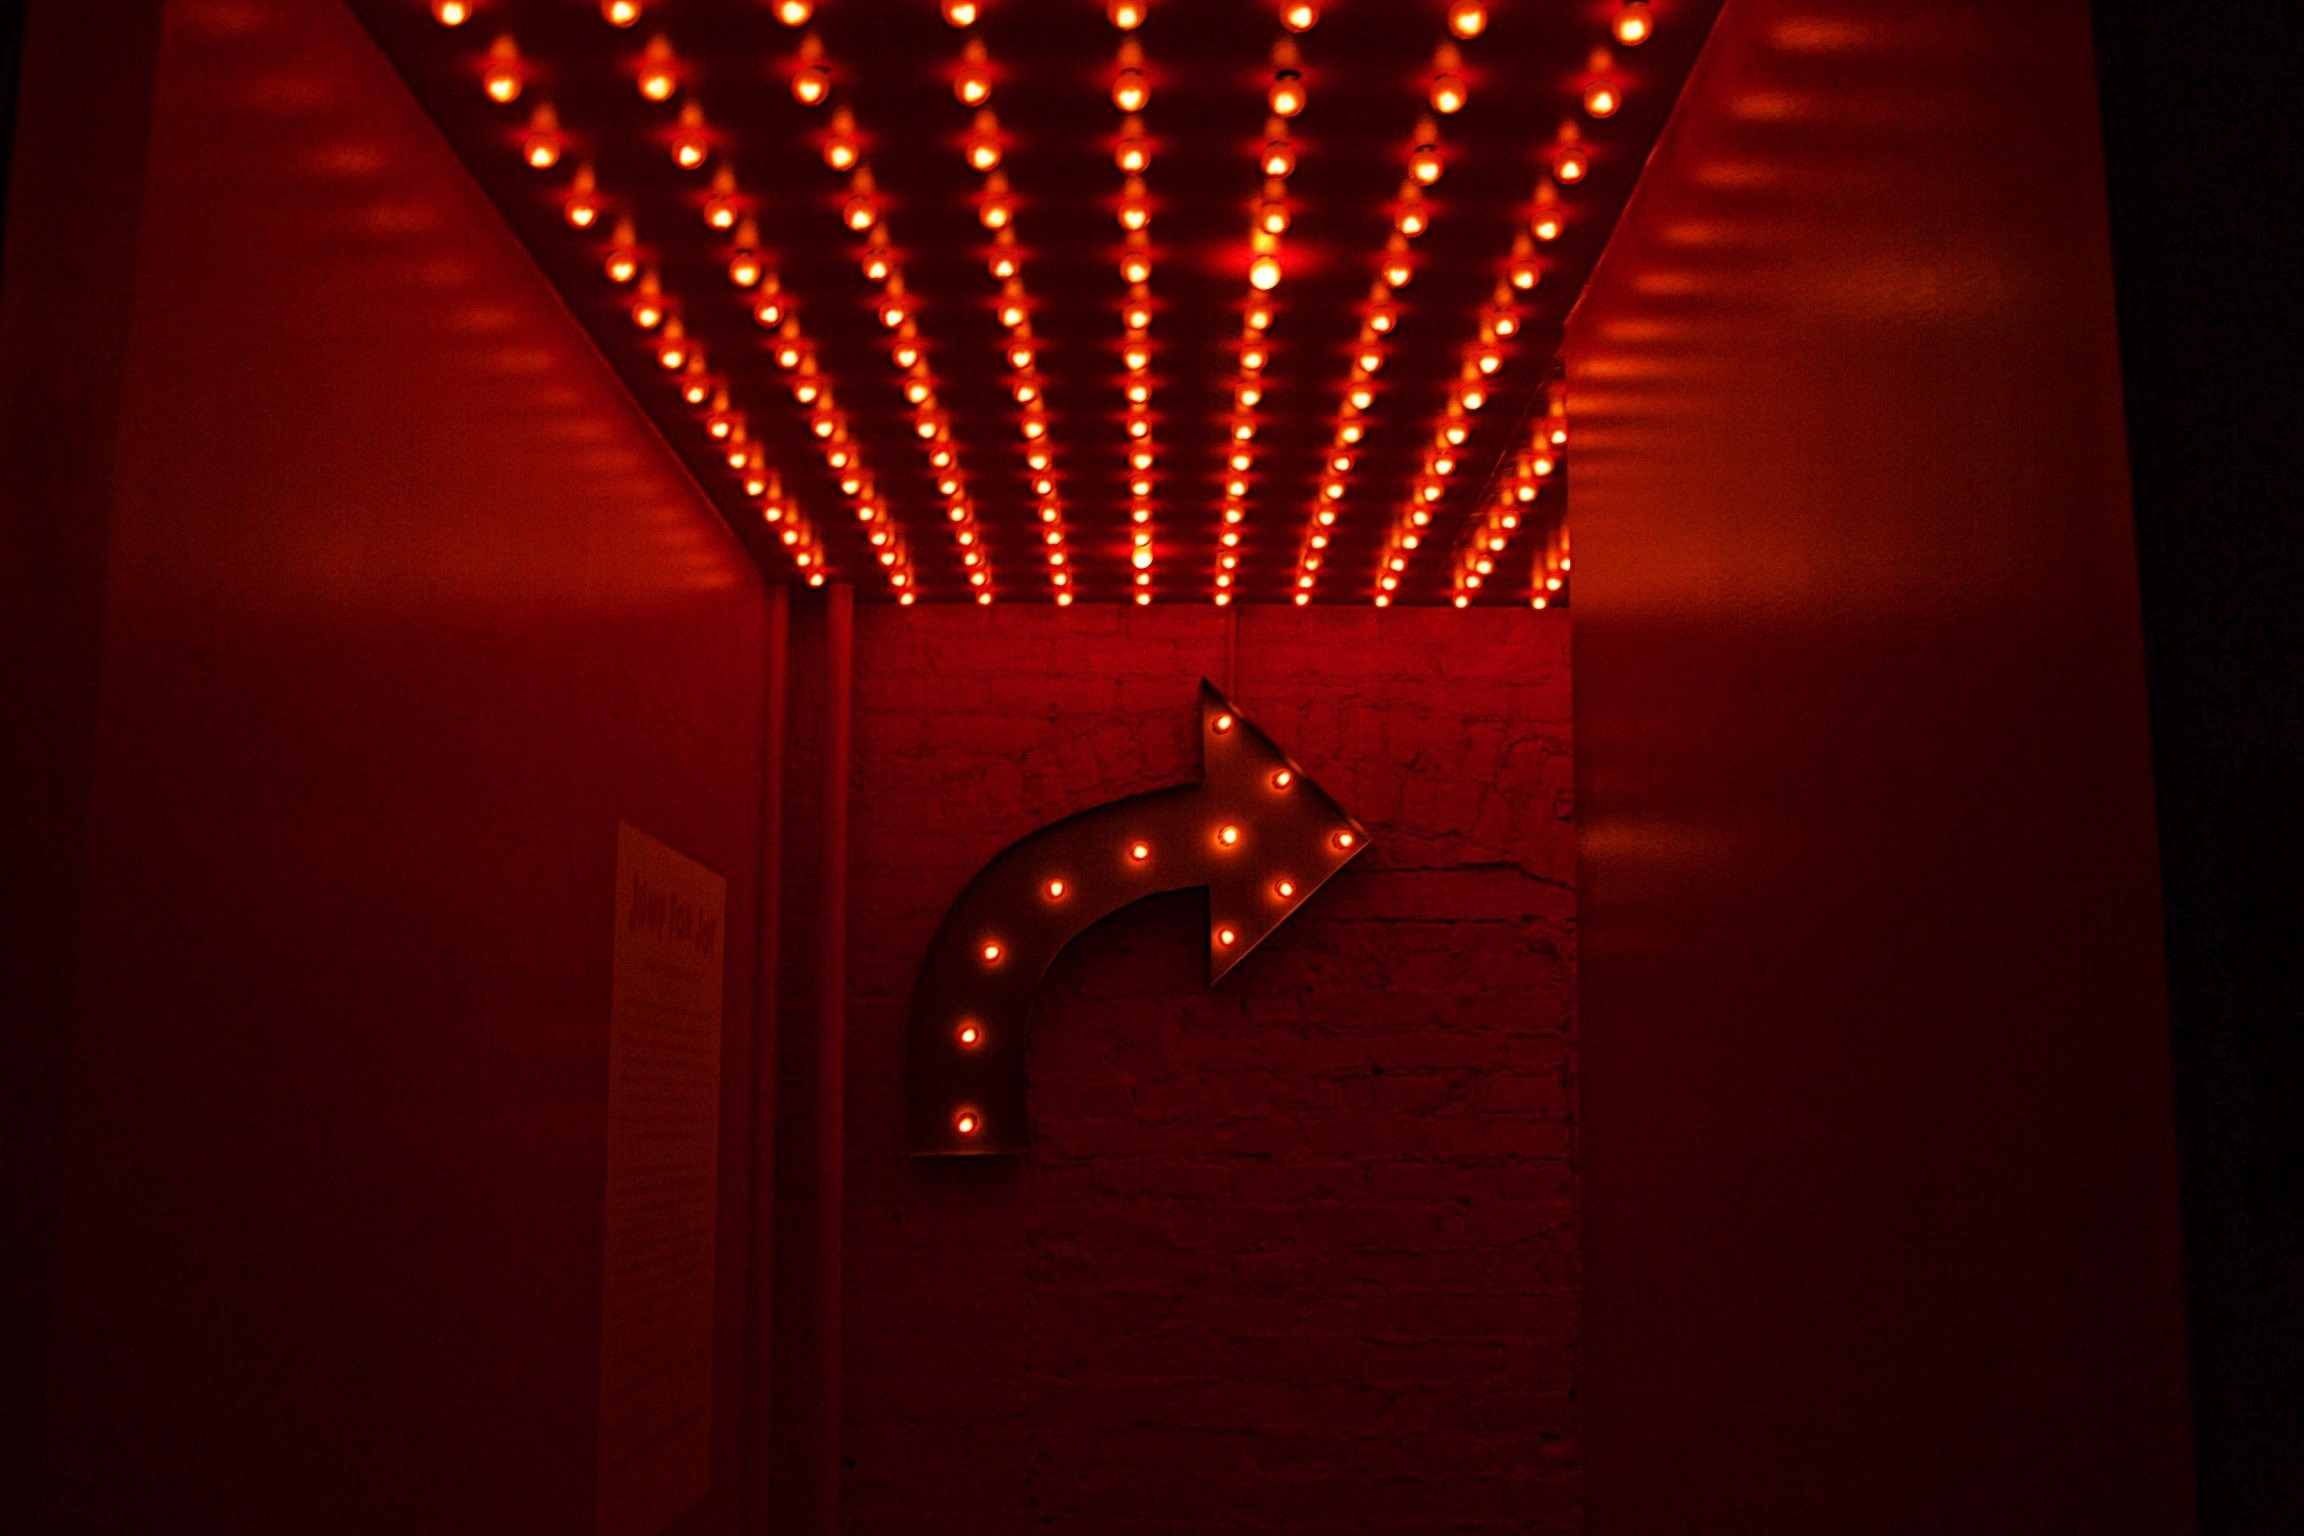 red photo. A series of light bulbs for, the shape of an arrow pointing right. A series of red lightbulbs are placed on the ceiling as well.